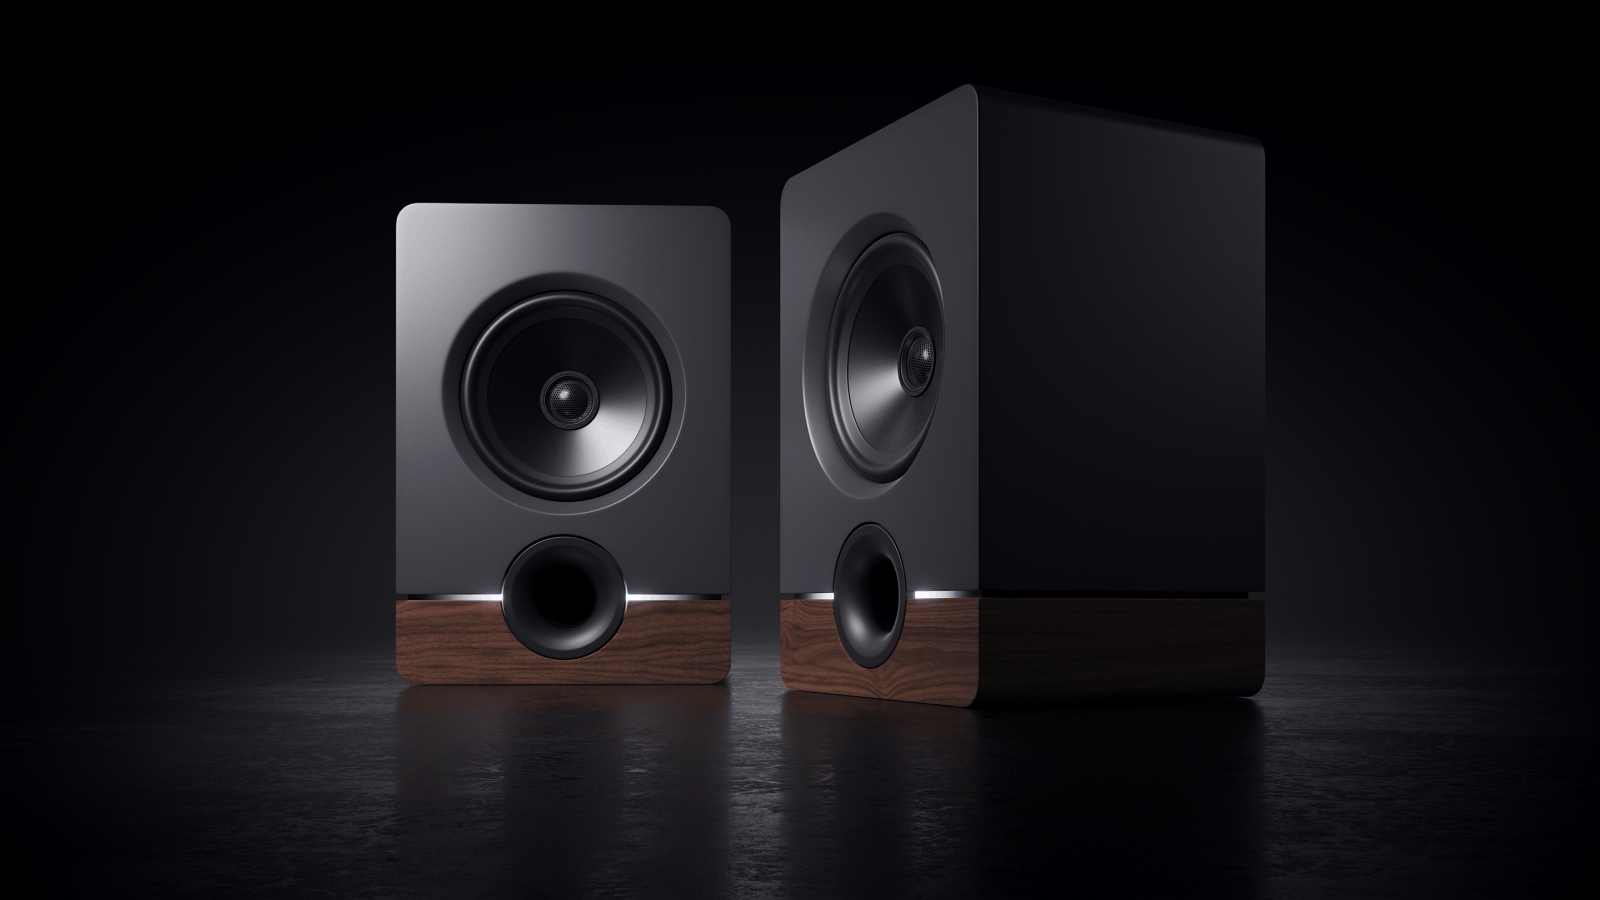 Artists and musicians talk about why they love frontier studio monitor speakers by output